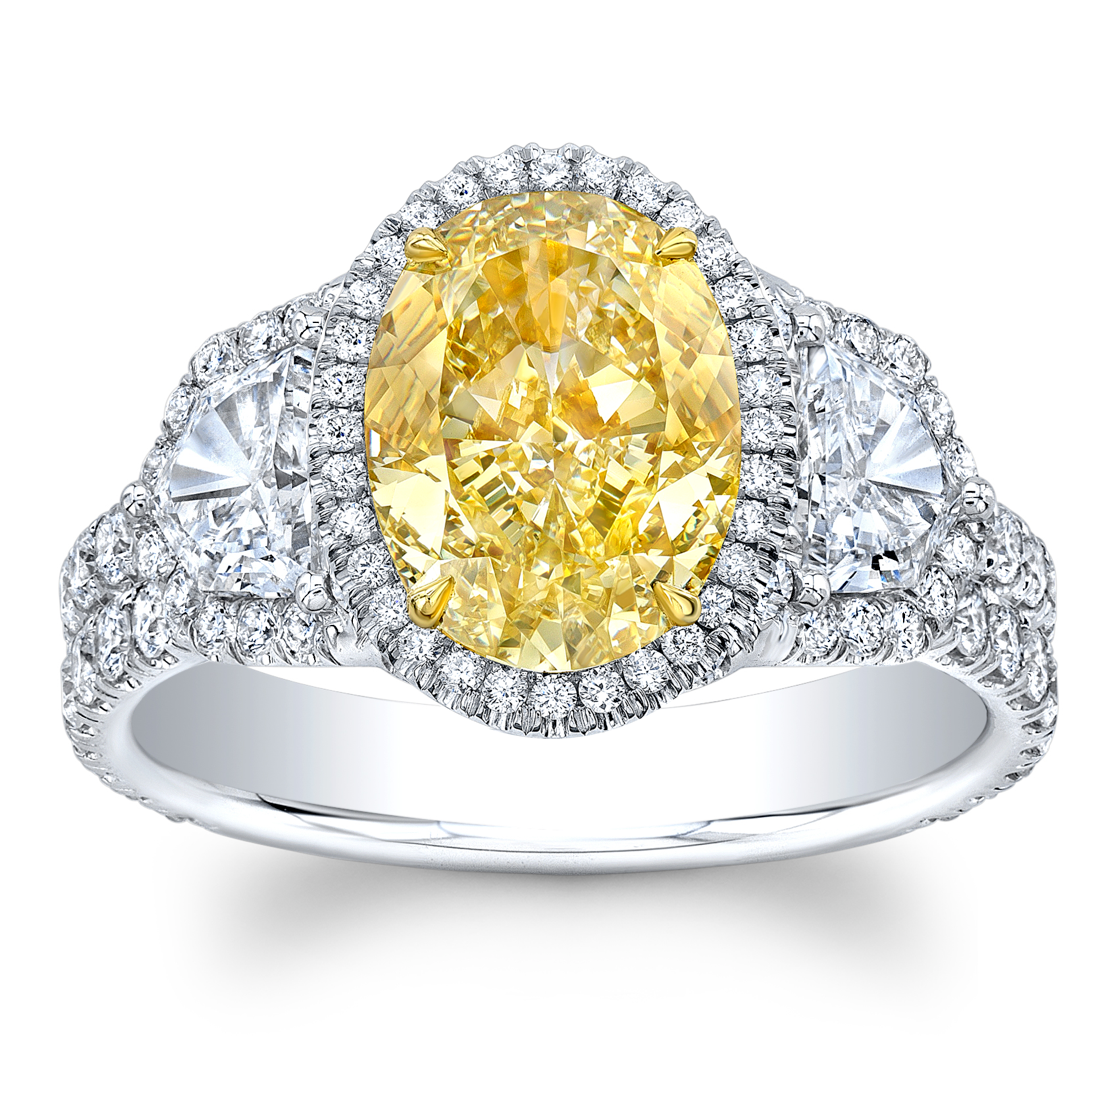 1.32 ct Oval cut Fancy Yellow diamond Ring